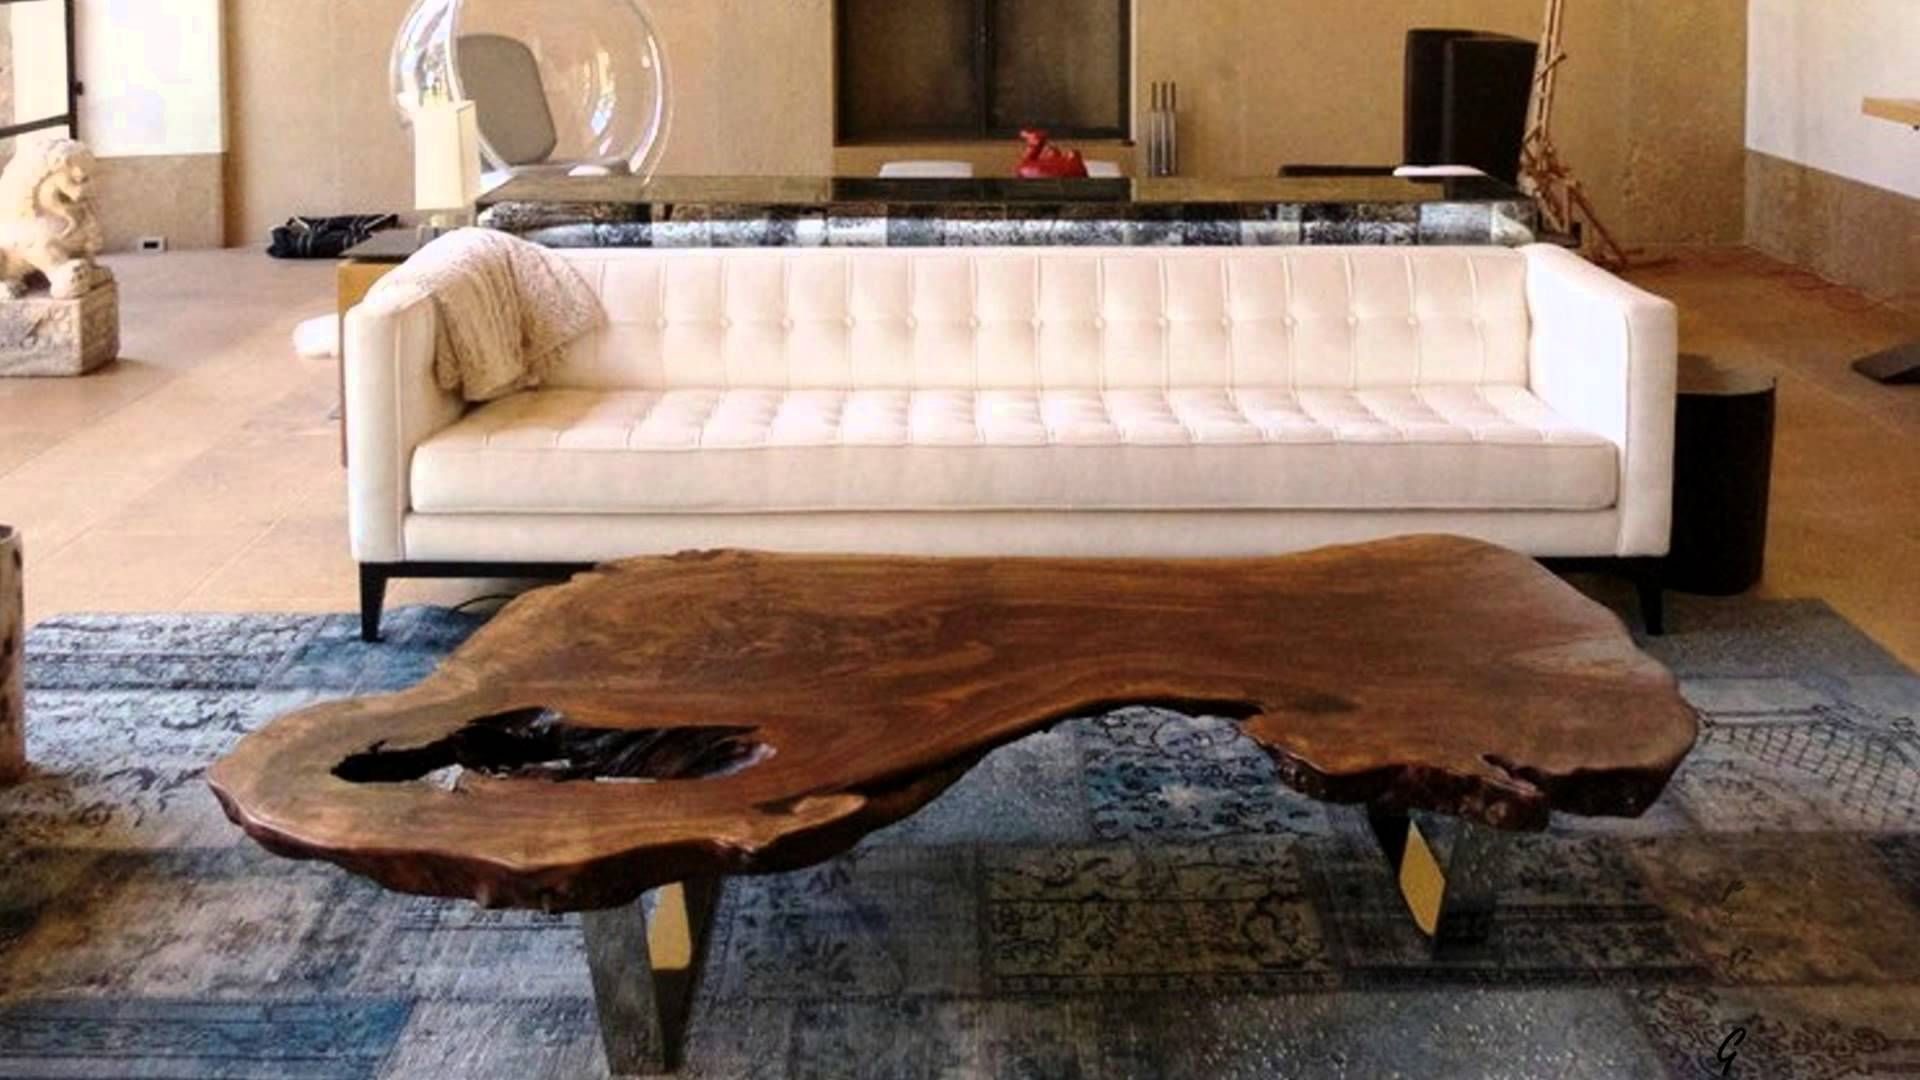 Magnificent Wood Slab Coffee Table Ideas | Interior Decorating | Pinterest  | Wood Slab, Wood Slab Dining Table And Wood Slab Table